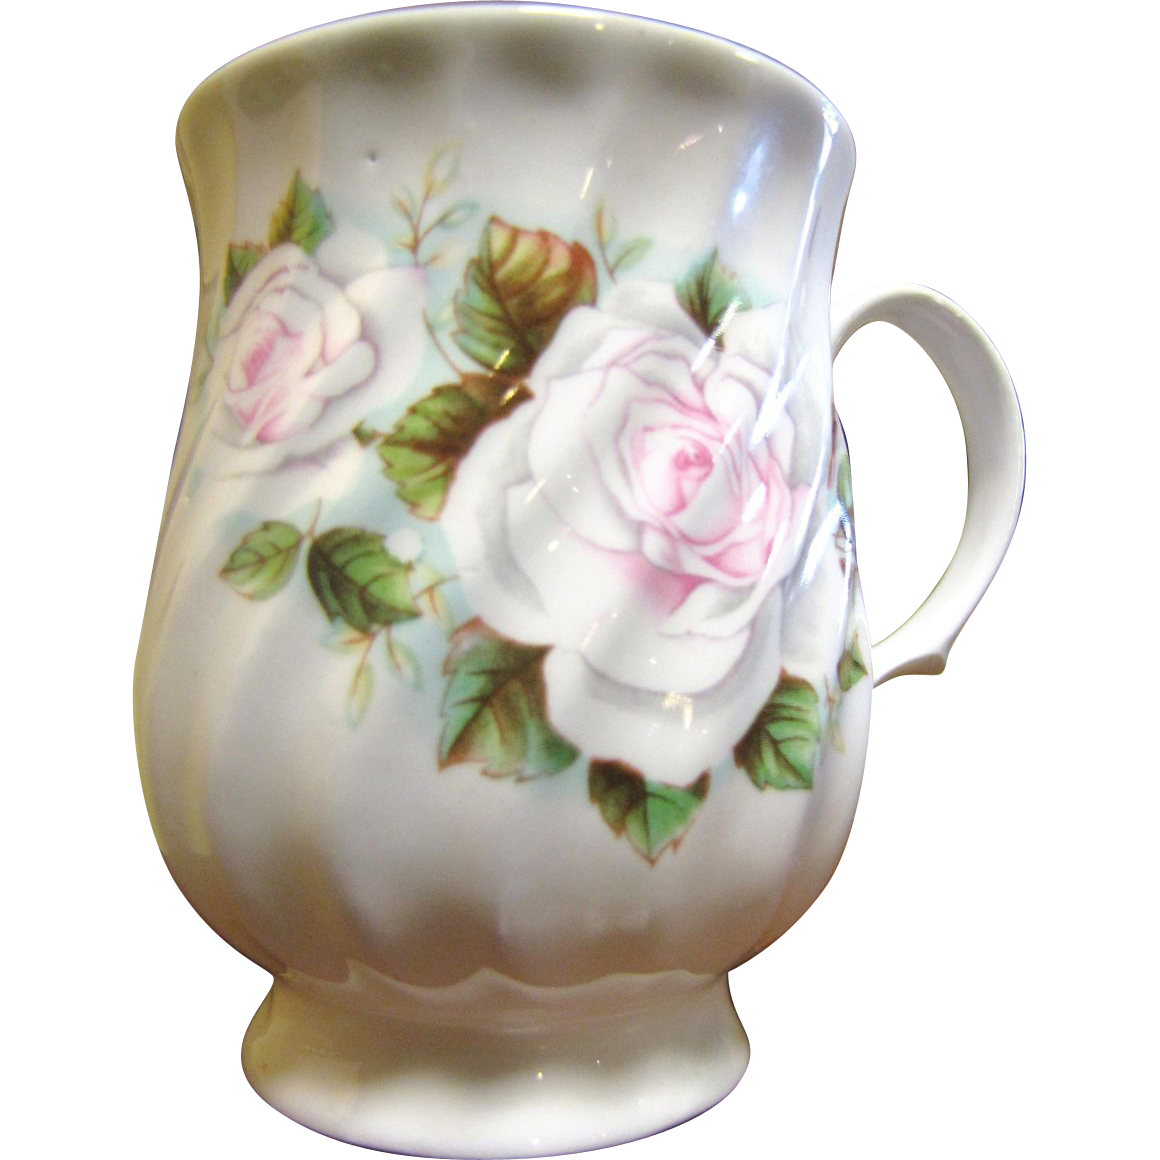 Prettiest Rose Embellished Porcelain Mug by Hitkari